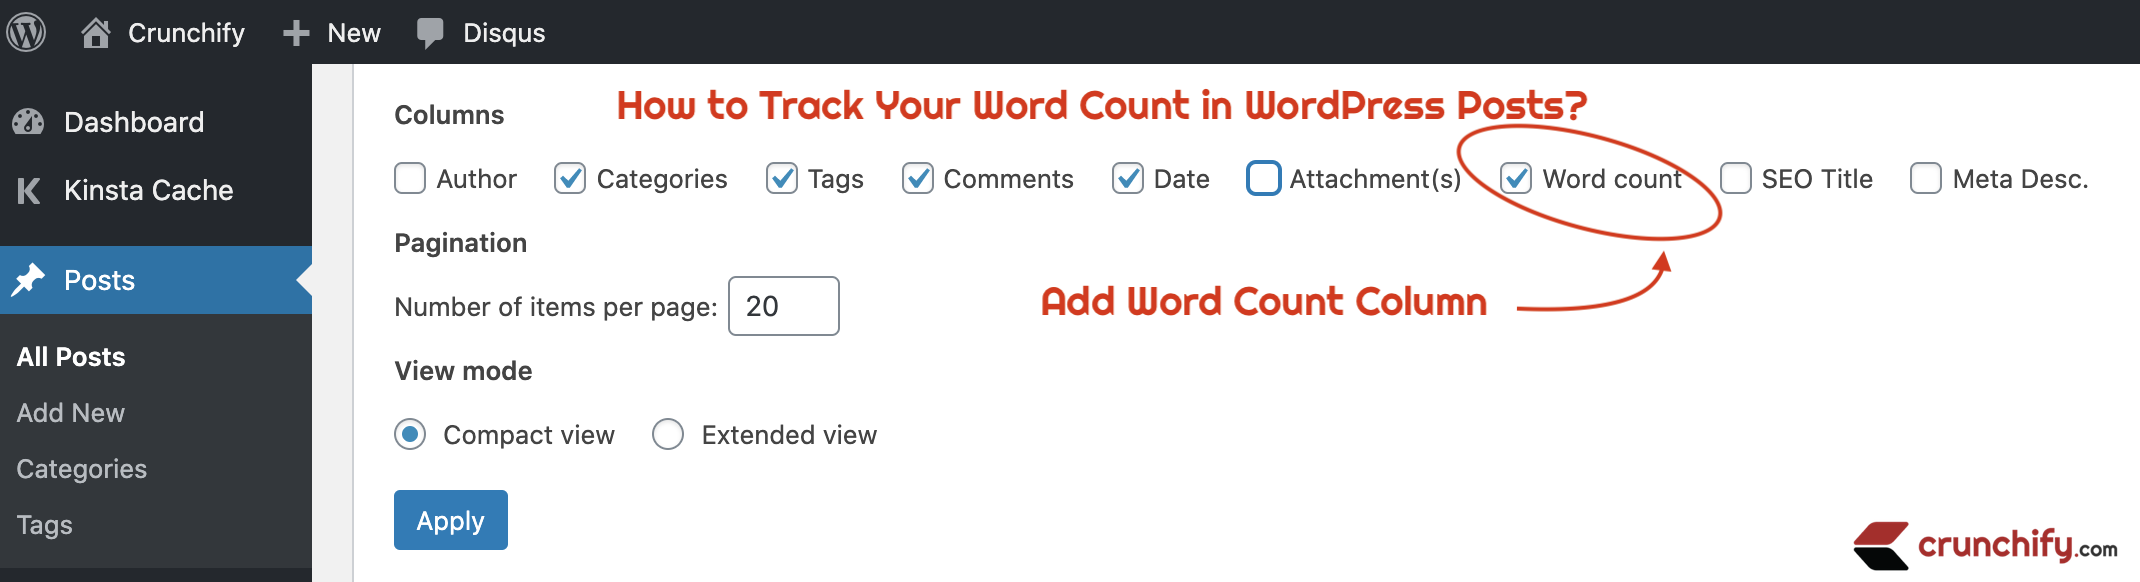 How to Track Your Word Count in WordPress Posts